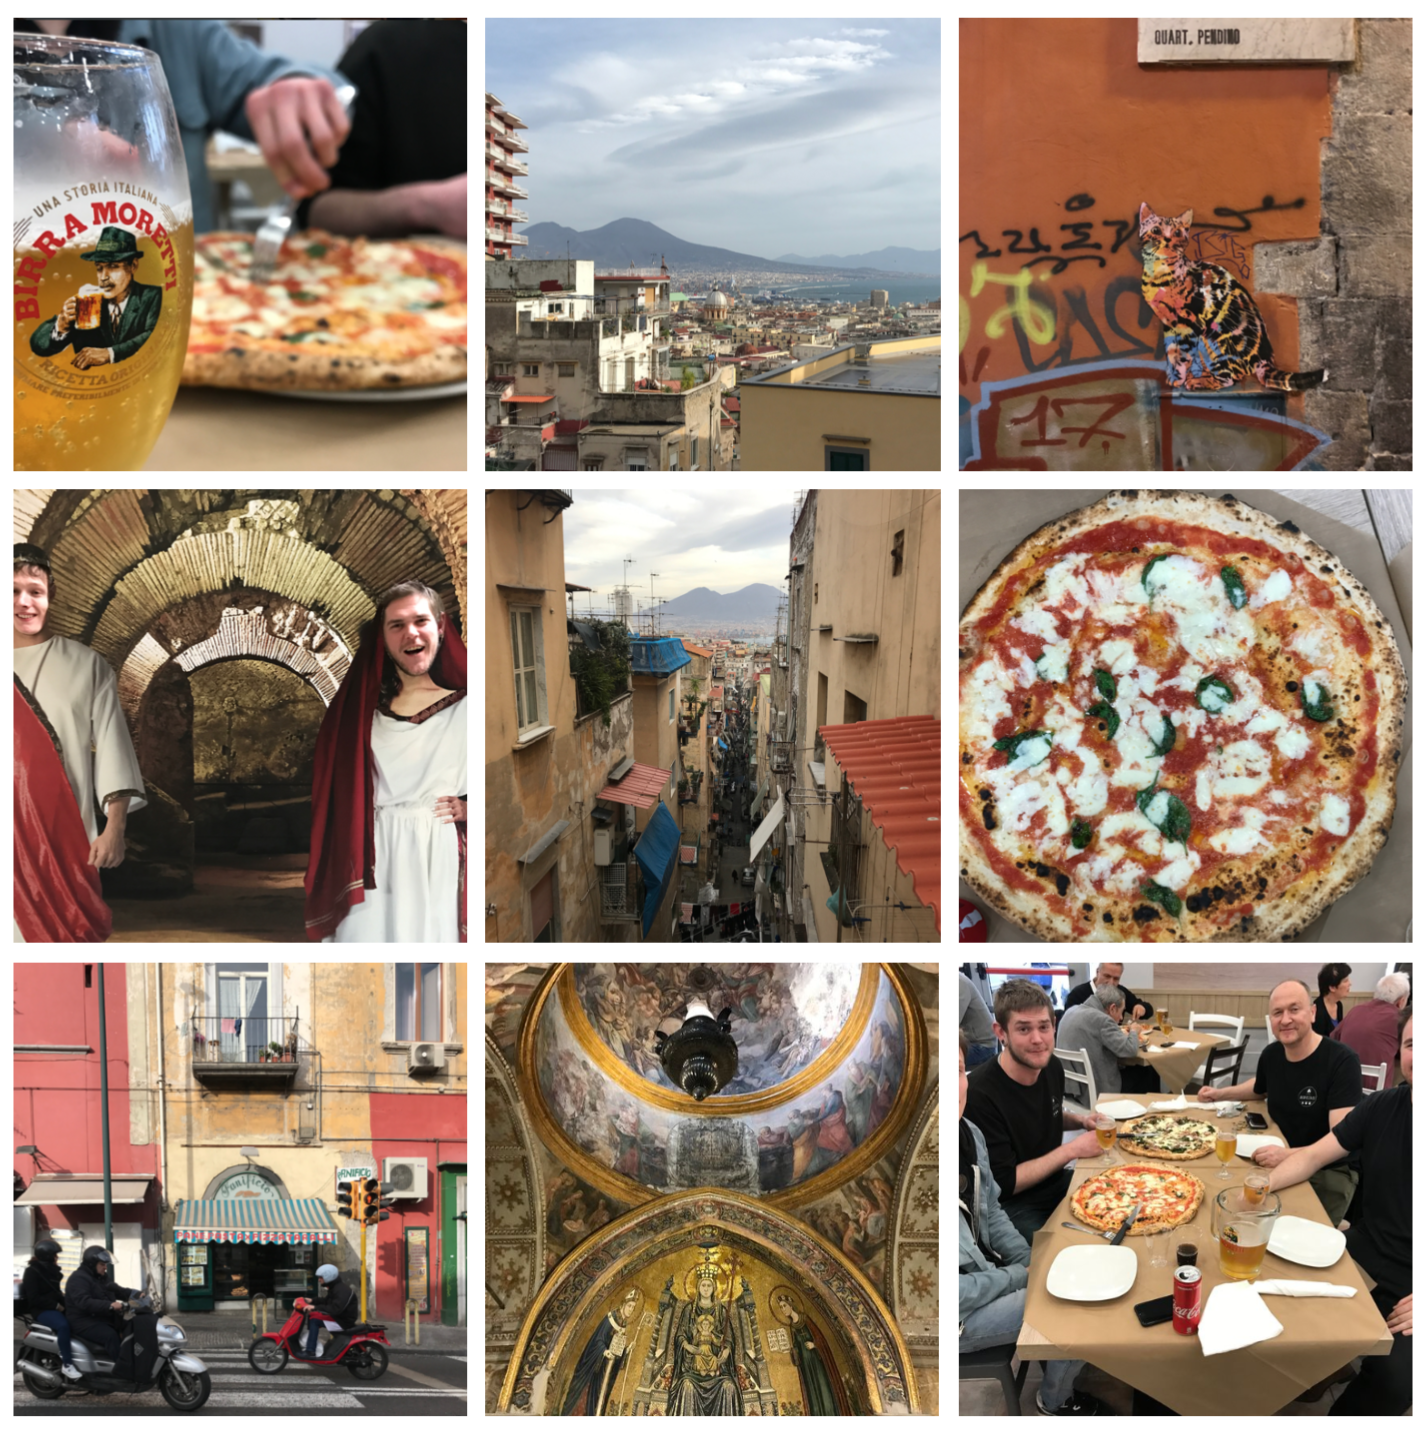 bath-pizza-co-visit-naples-2018.jpg